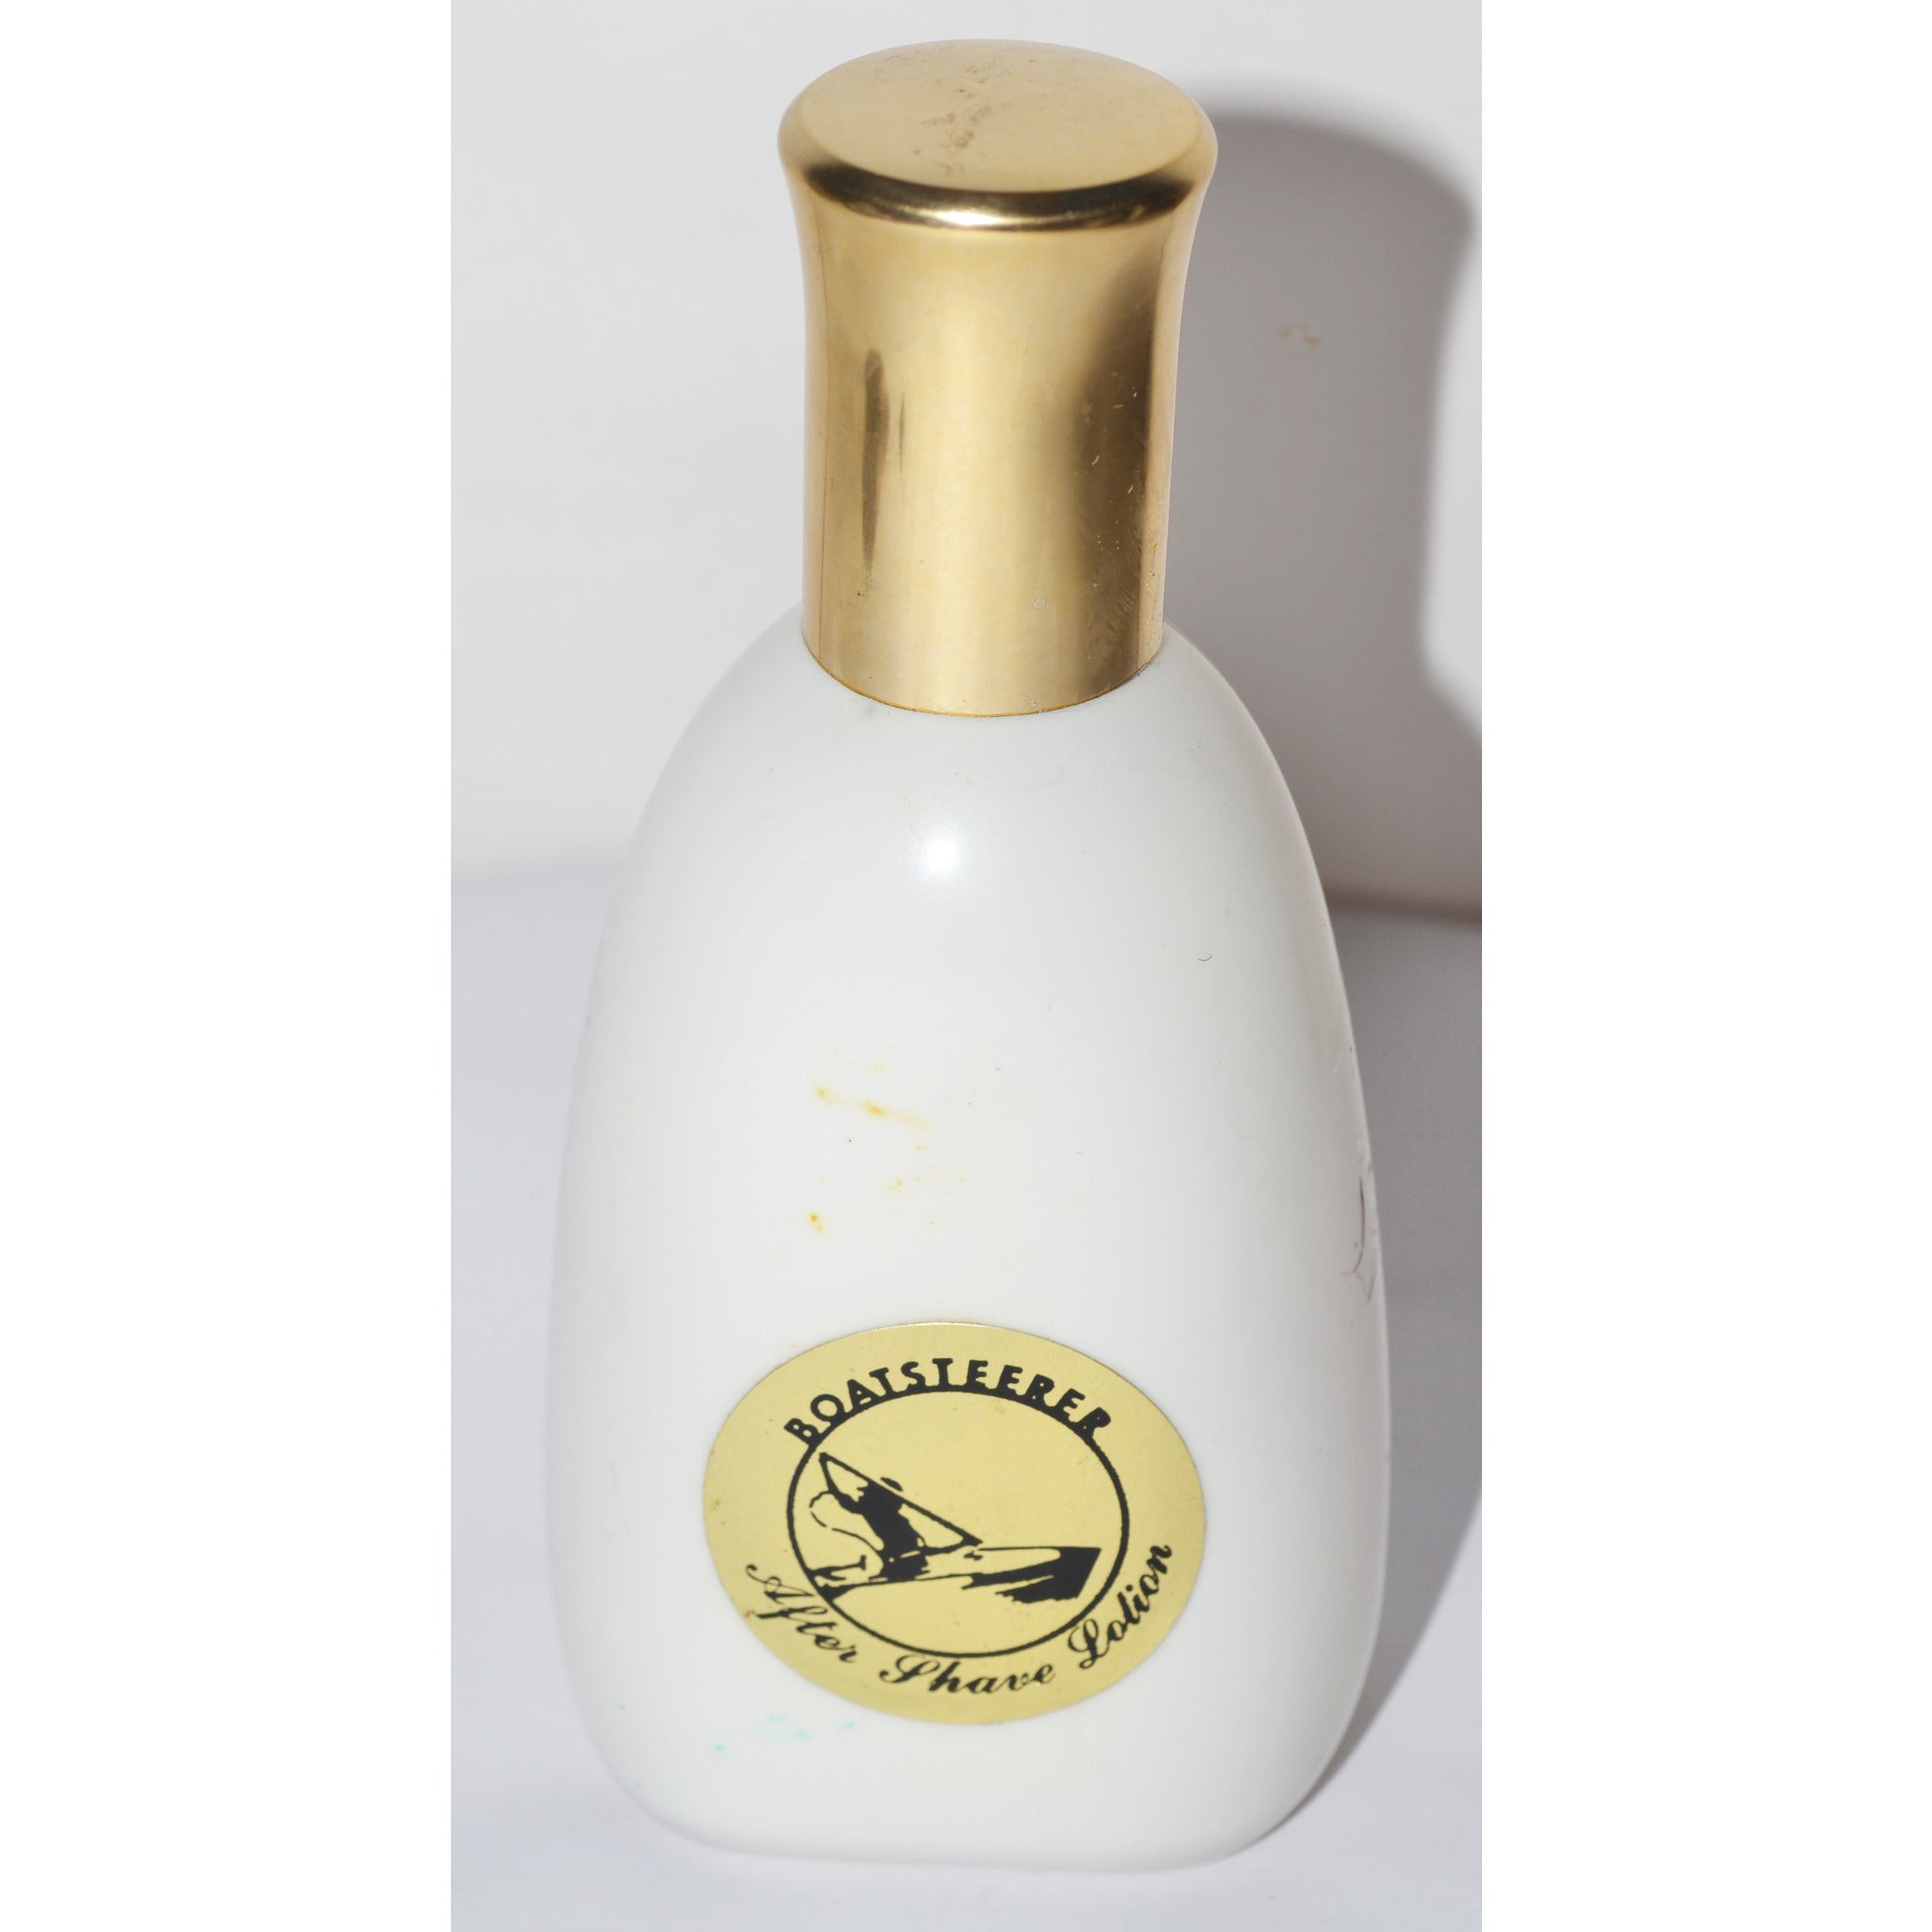 Vintage Boatsteerer After Shave Lotion By George Fuller